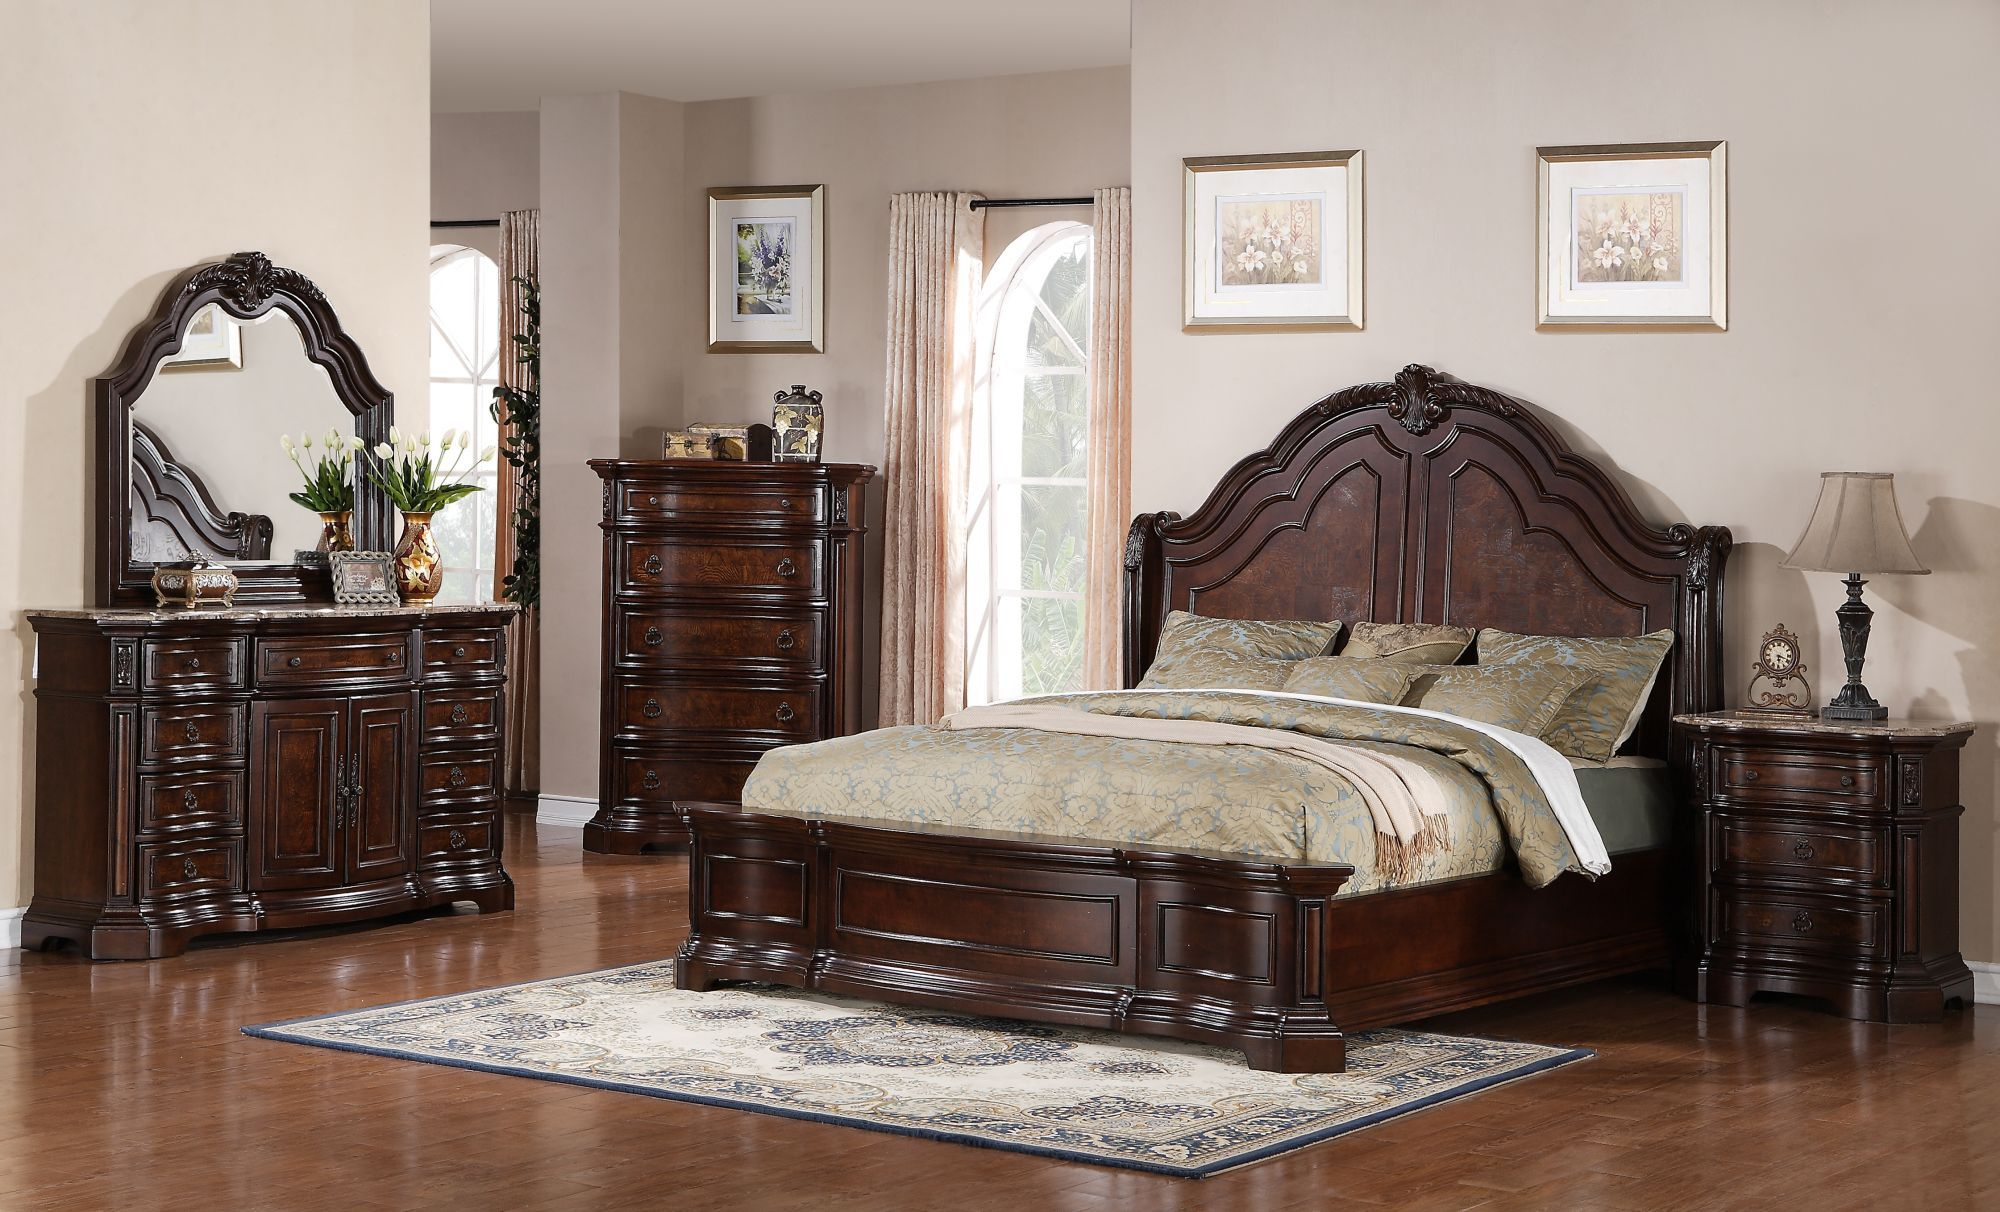 king mathis lawrence edington furniture bed brothers platform sets bedroom samuel